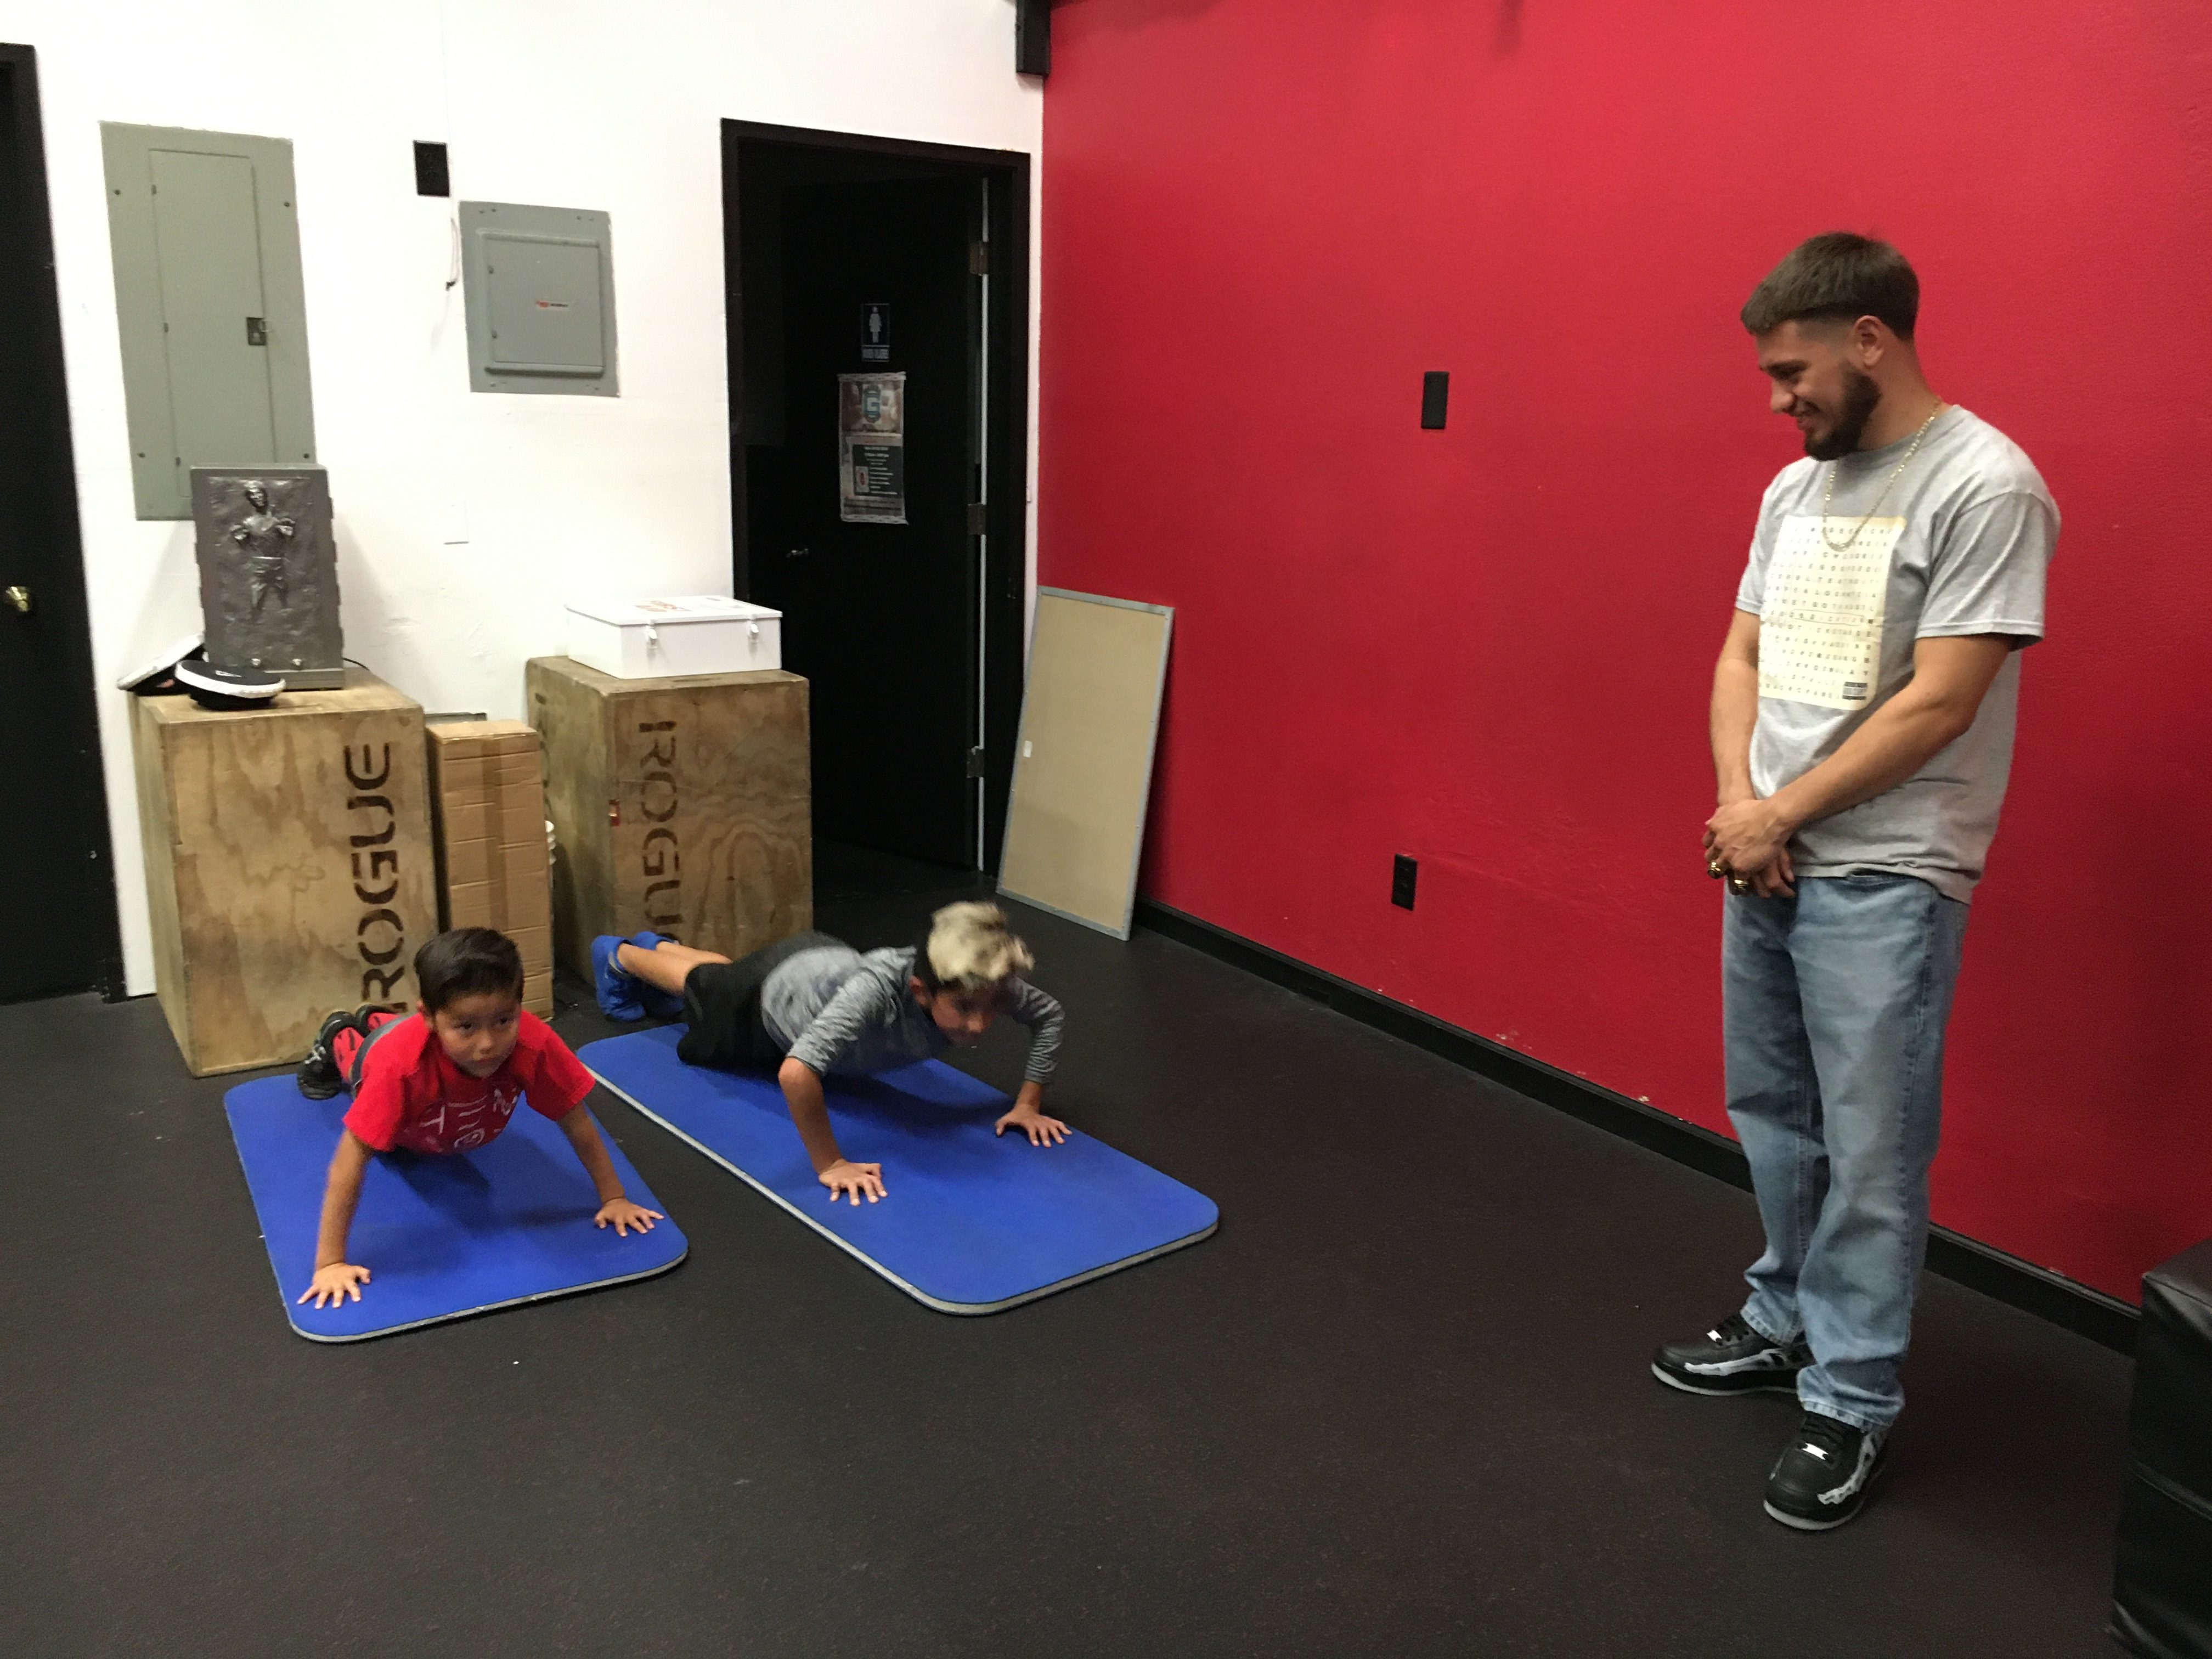 Ruben-Villa-IV-encourages-10-year-old-Isaac-Mendoza-AKA-Blondie-and-7-year-old-Joshua-Vallejo-Leprechaun-who-work-out-daily-at-his-gym.-DENNIS-TAYLOR-PHOTO-e1574882320455